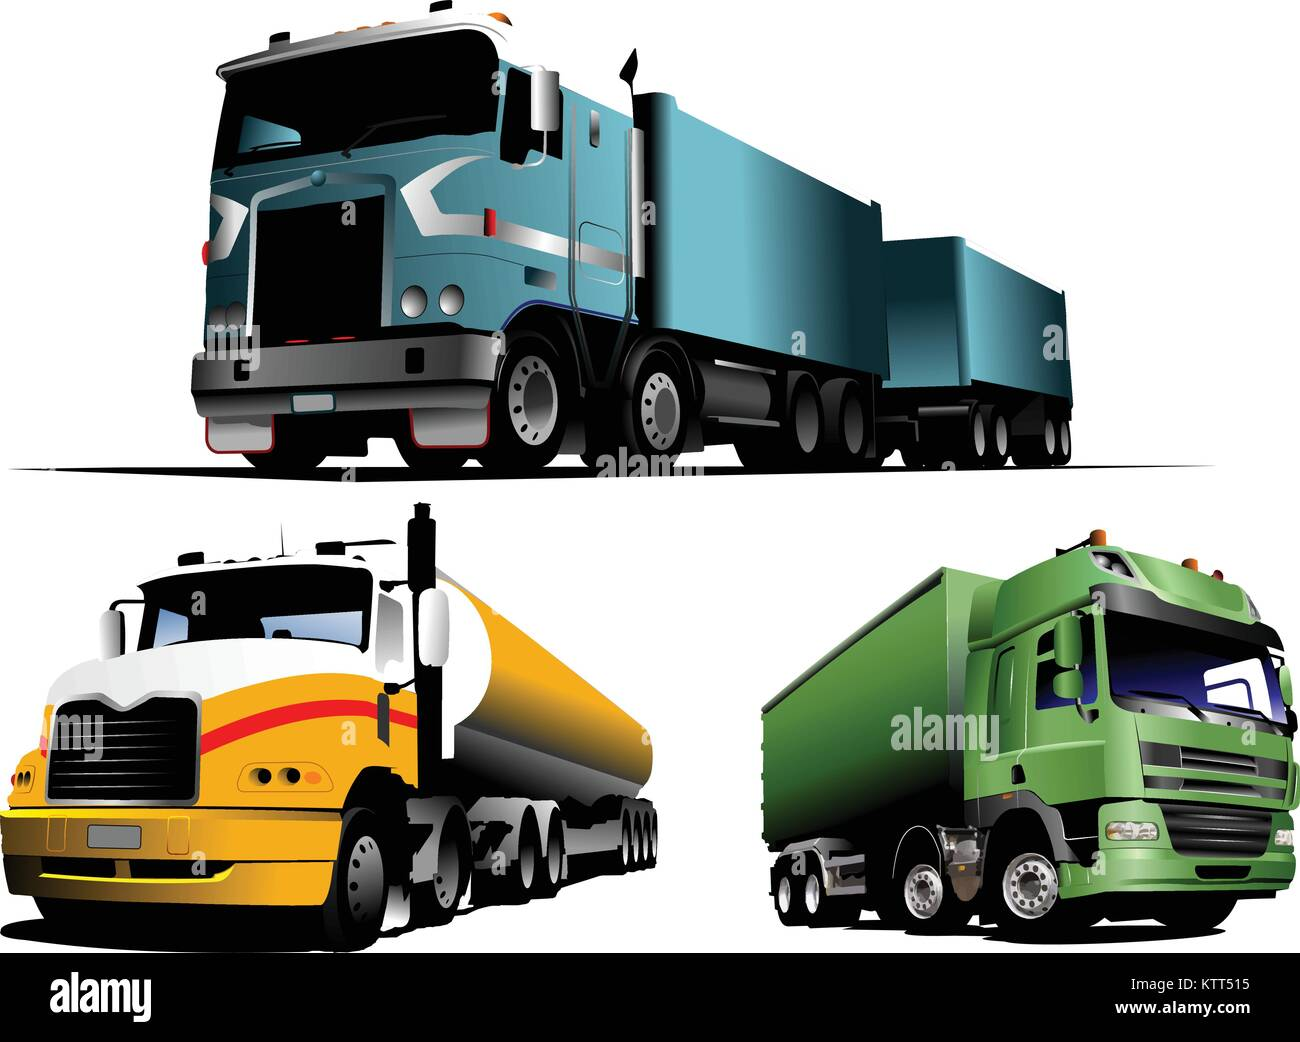 Green, blue and yellow  trucks on the road. Vector illustration - Stock Vector